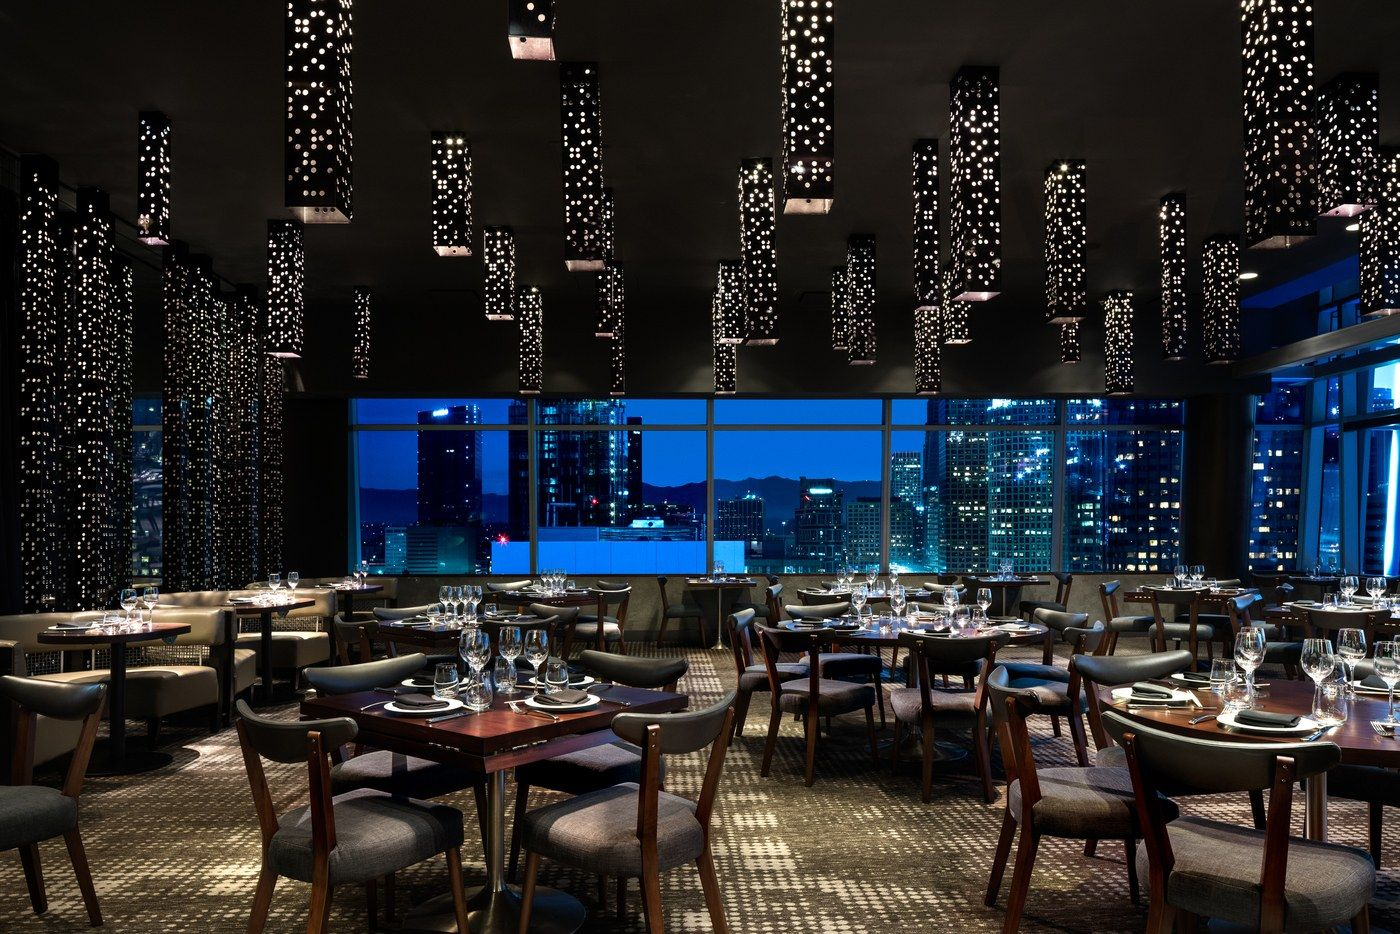 These Are 14 Of The Tallest Restaurants In The World Best Restaurants In La Los Angeles Hotels Los Angeles Restaurants